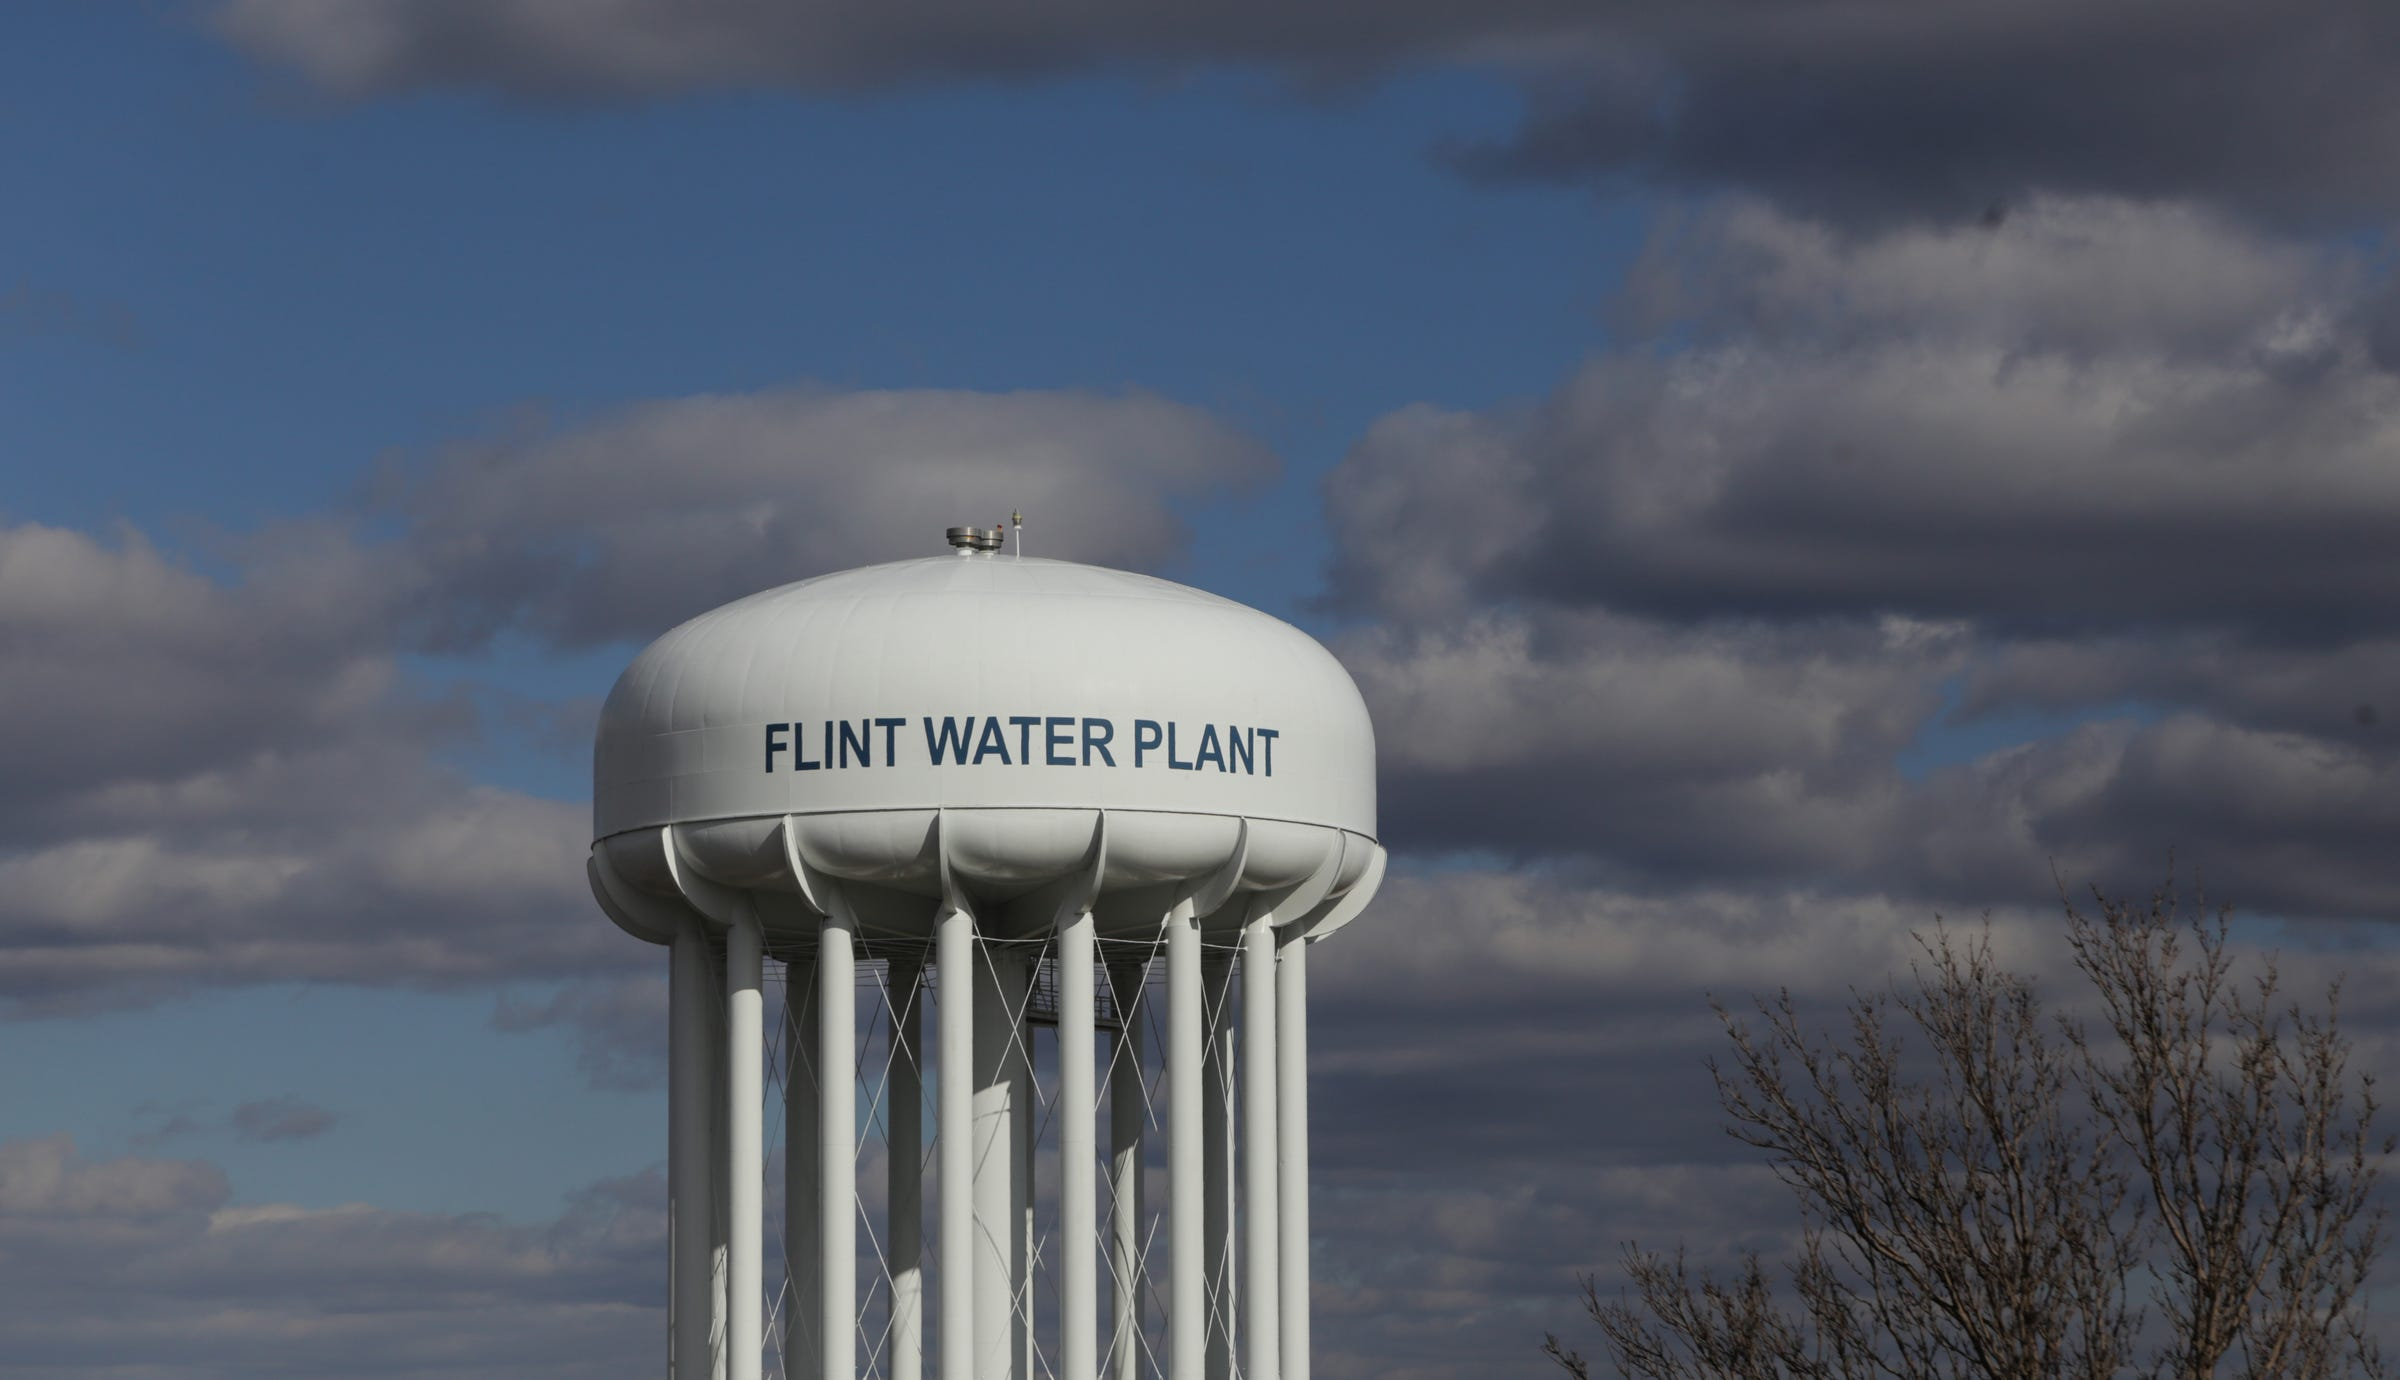 The Water Tower Of The Flint Water Treatment Plant